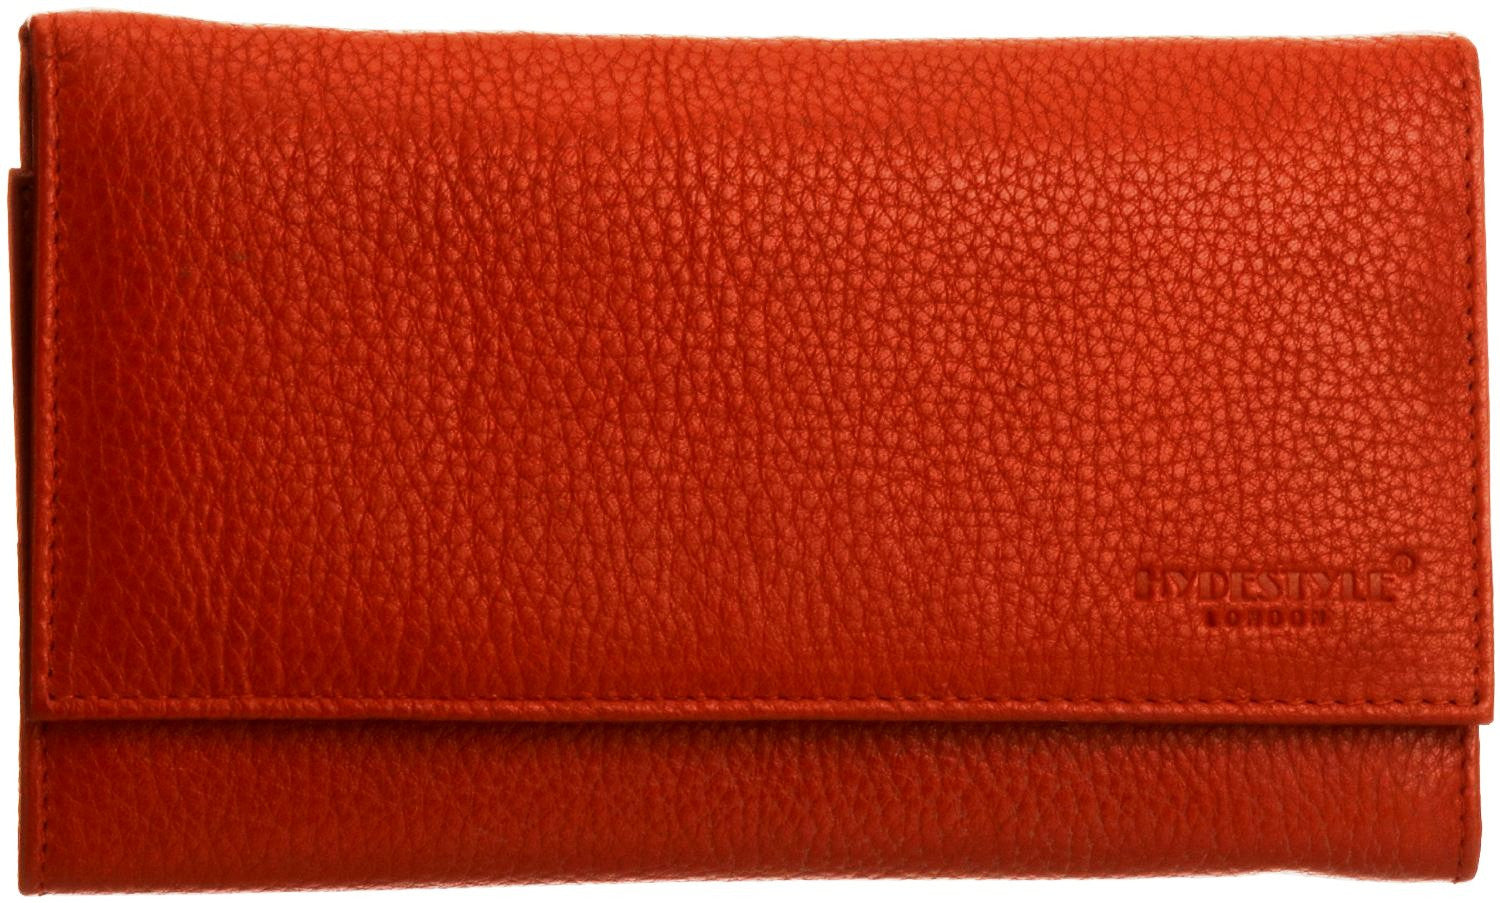 Pratico - women leather 27 card organizer #LW03 Red